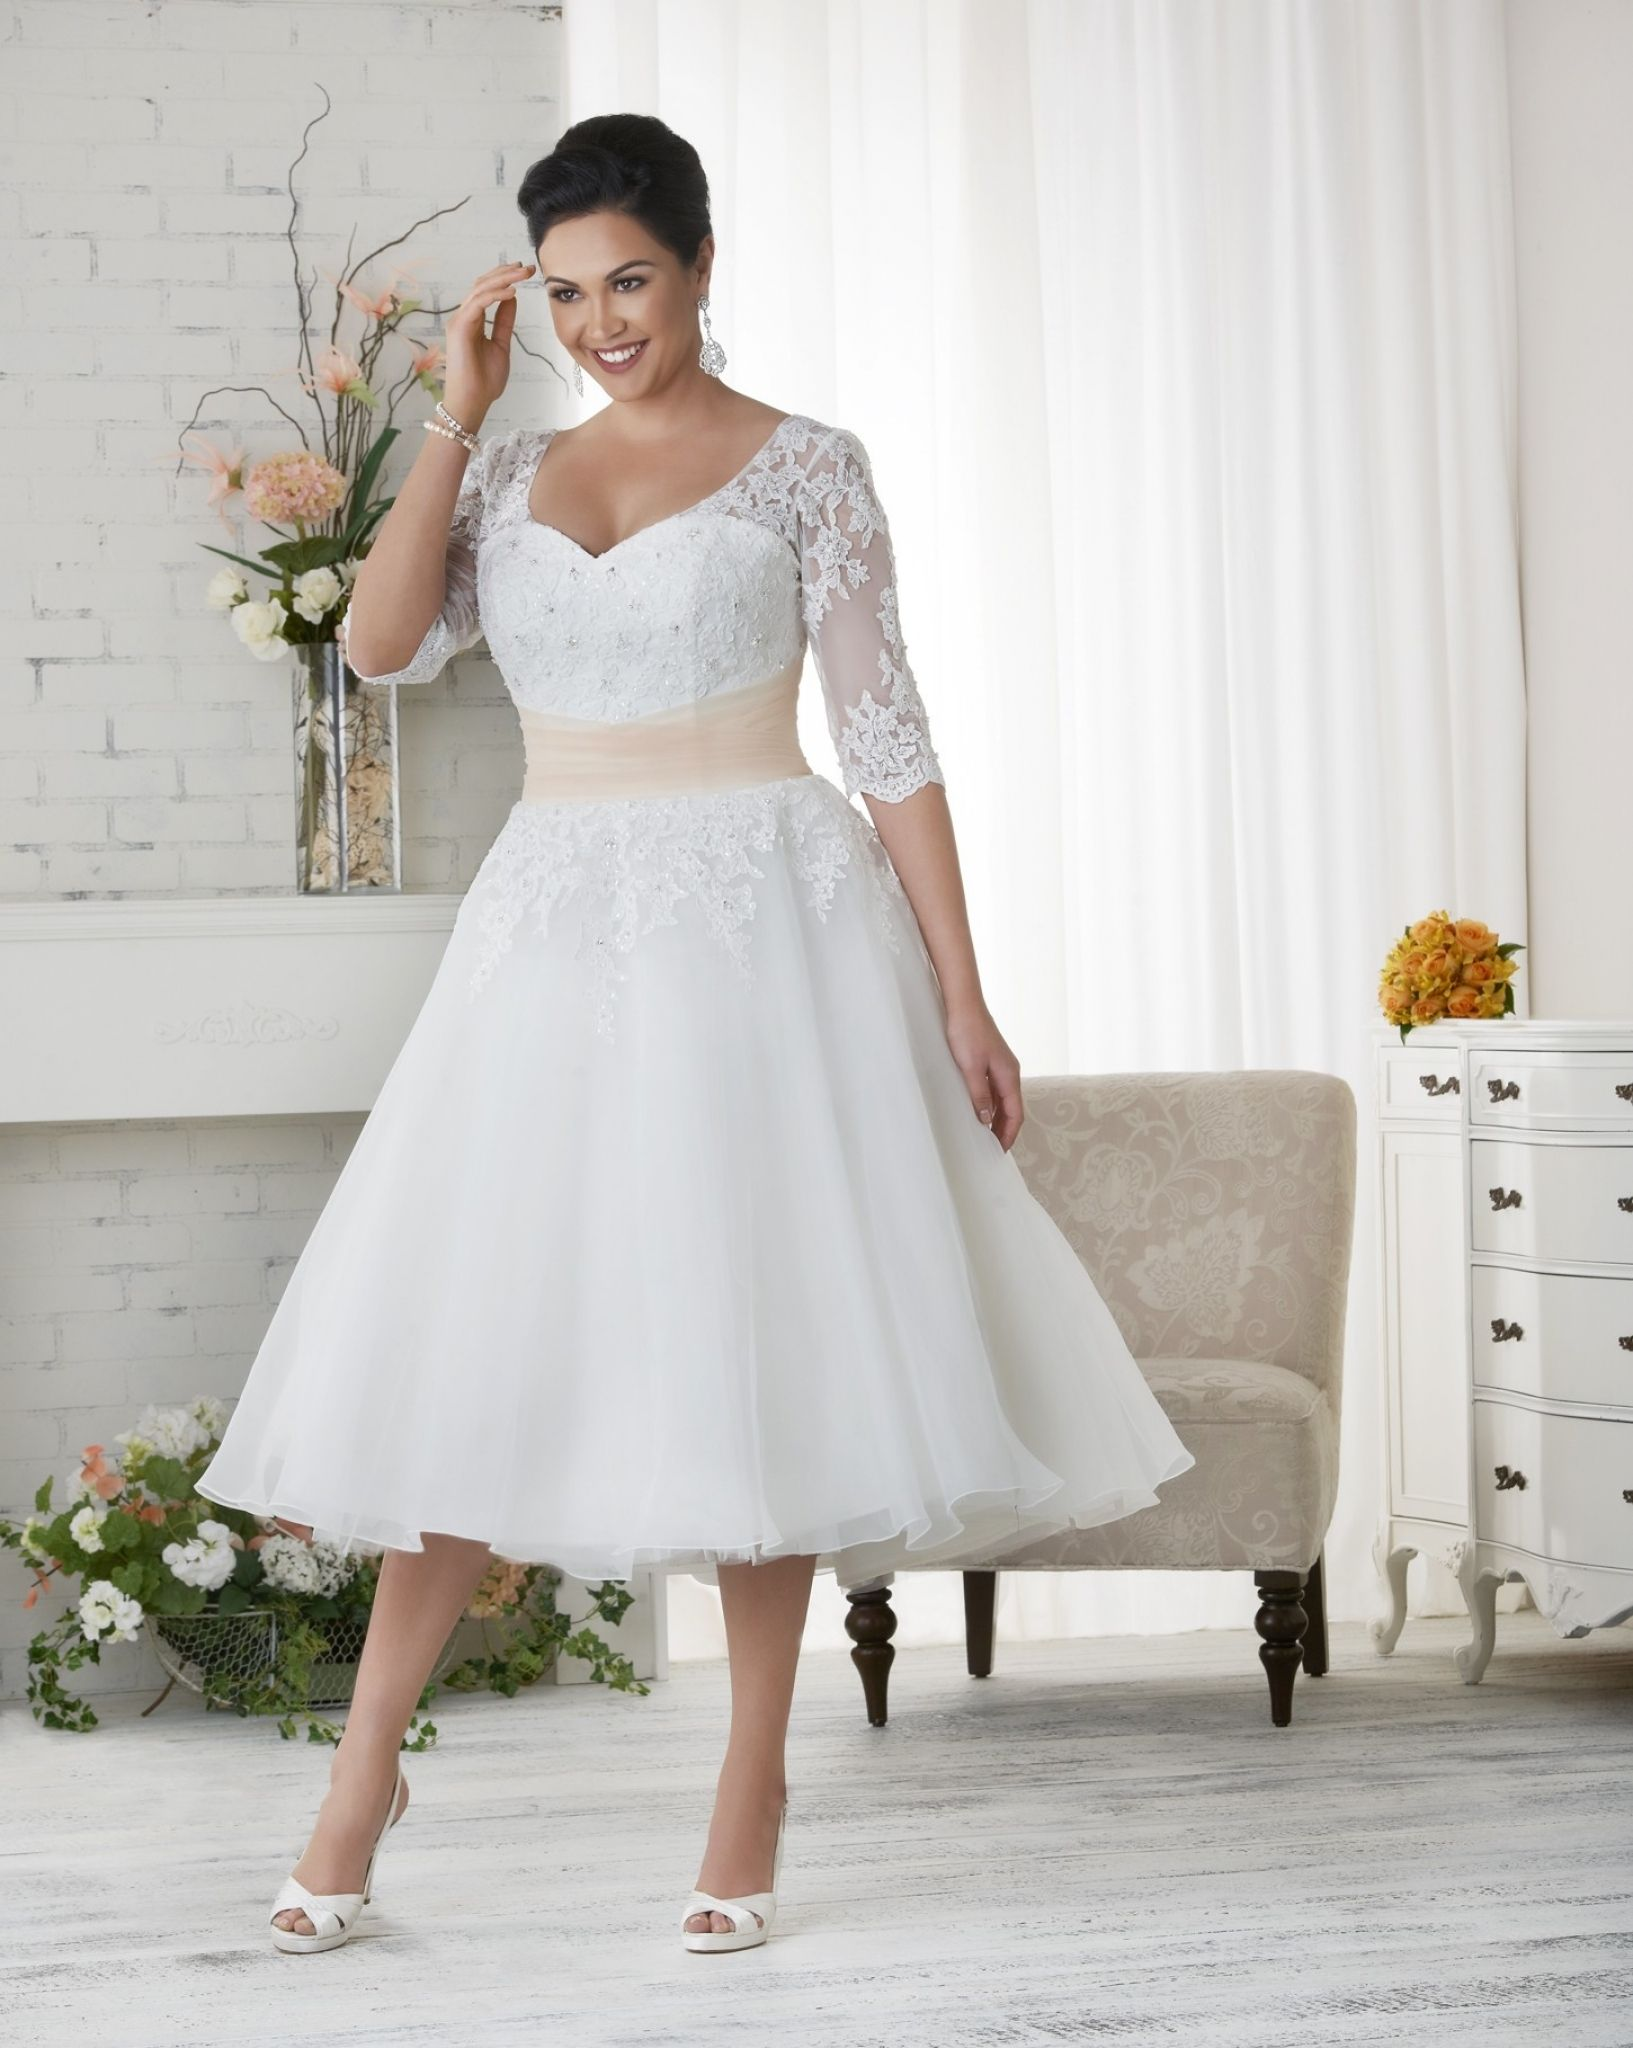 Mature bride wedding dresses  modest plus size wedding dresses  wedding dresses for the mature